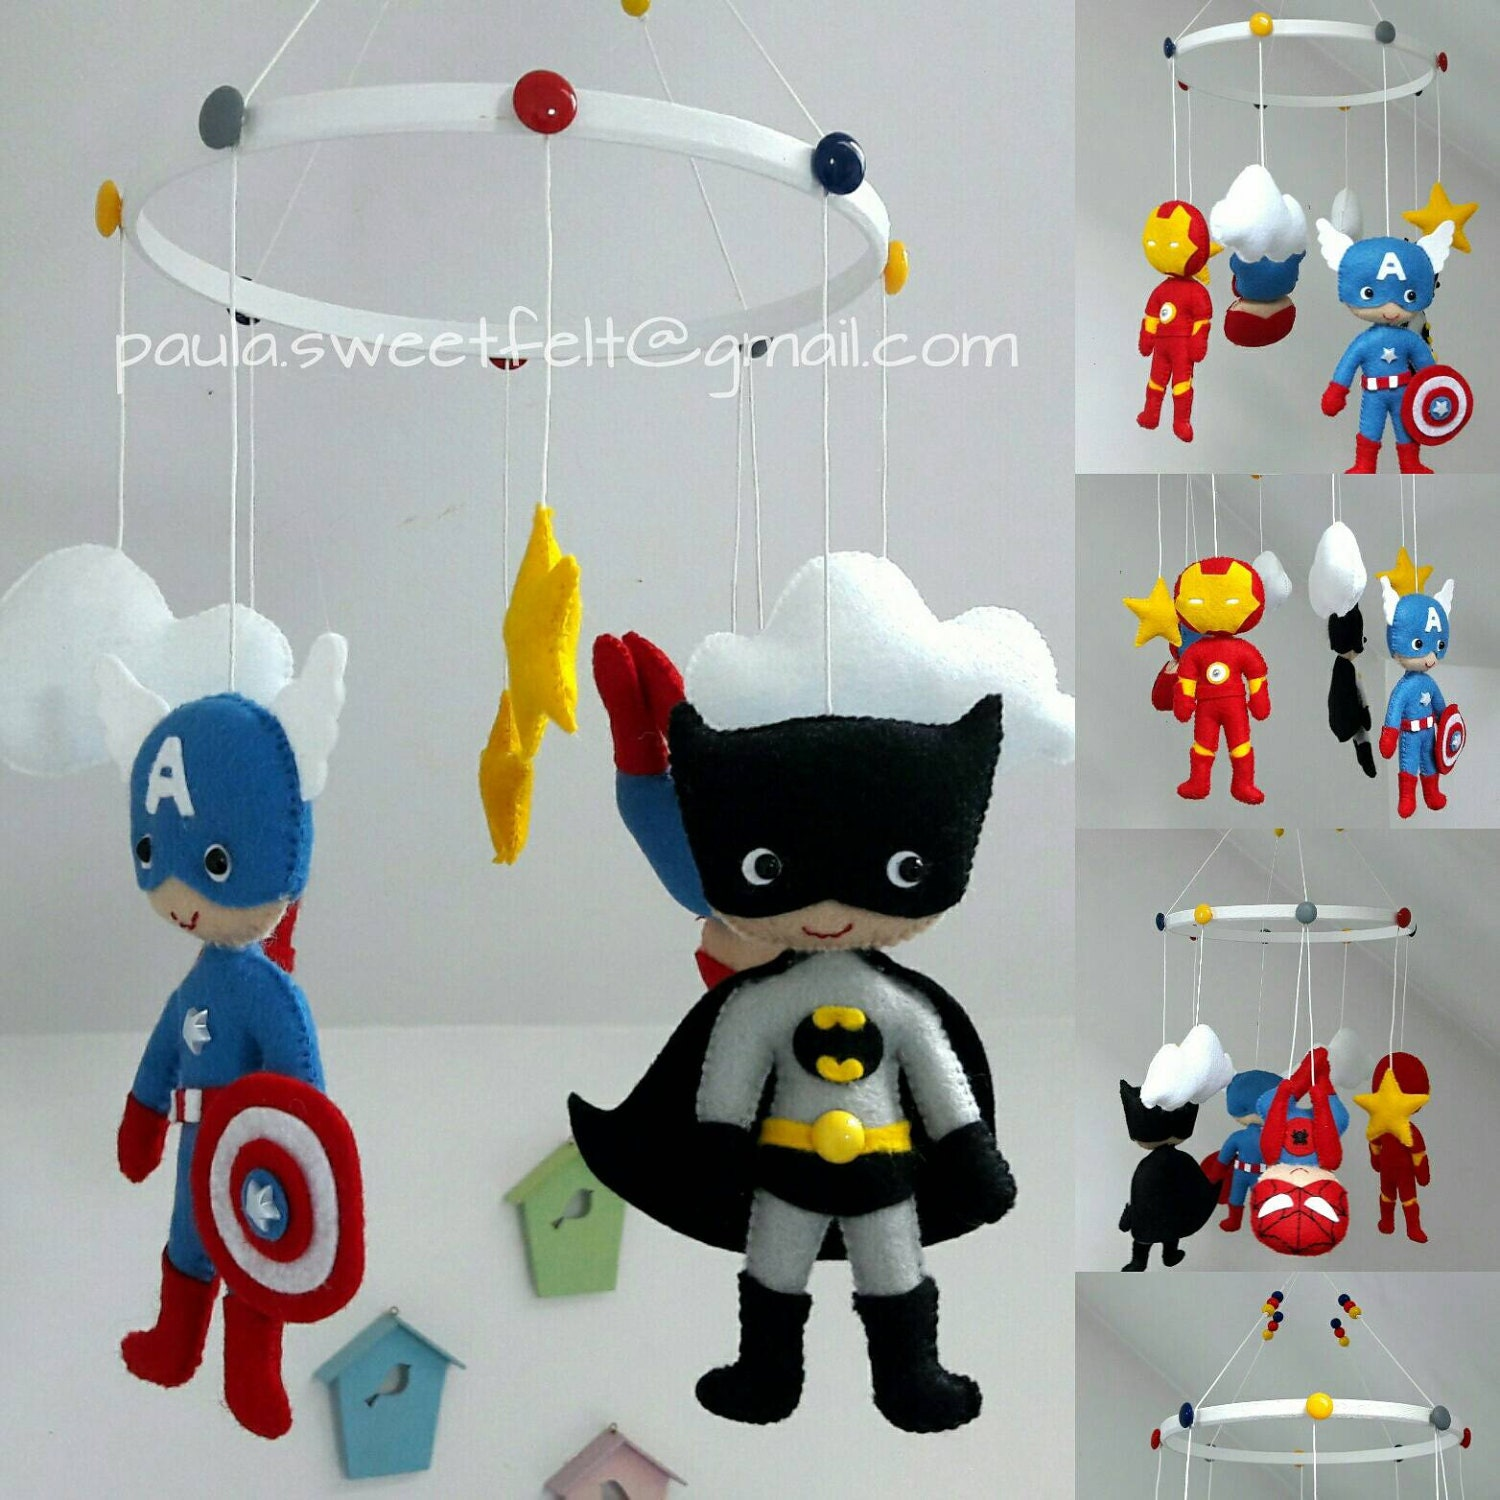 Baby cribs in ghana - Super Heroes Baby Crib Felt Mobile